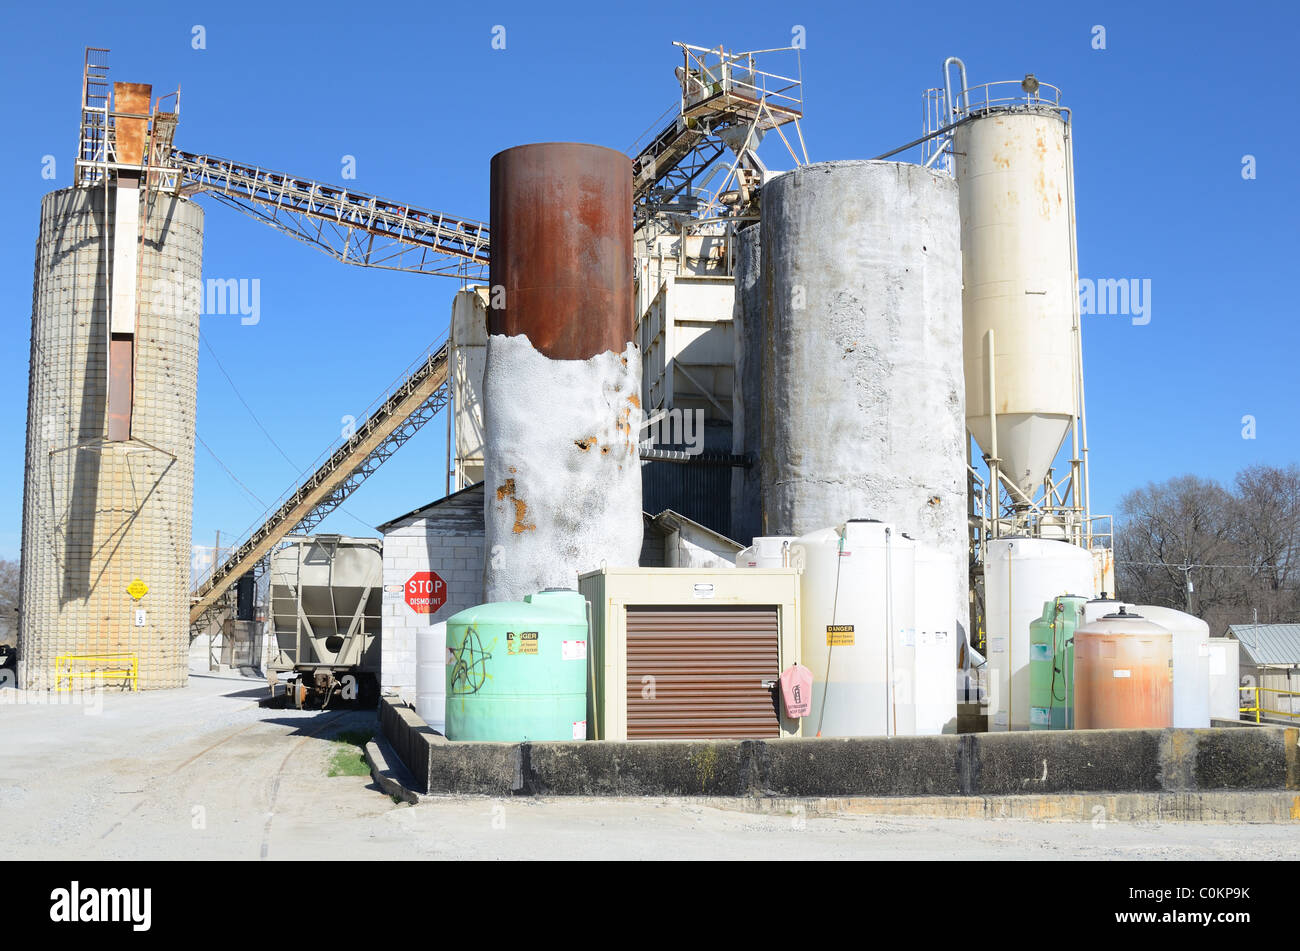 A cement factory - Stock Image